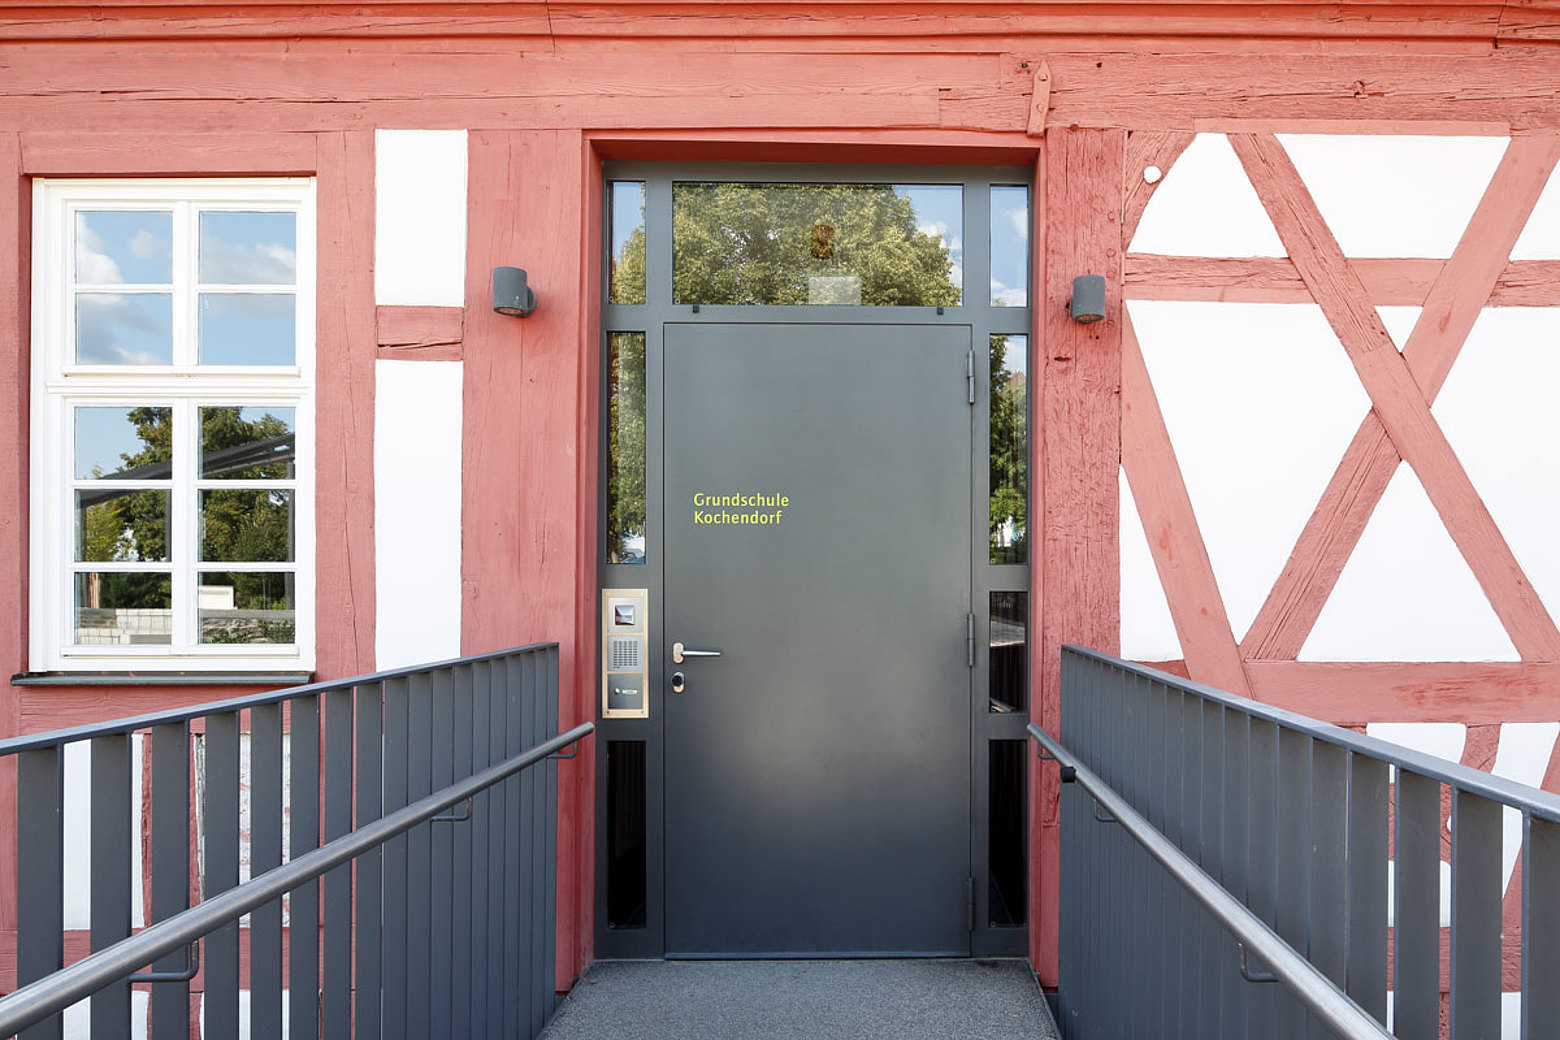 thermal insulated sheet metal entrance door, forster unico